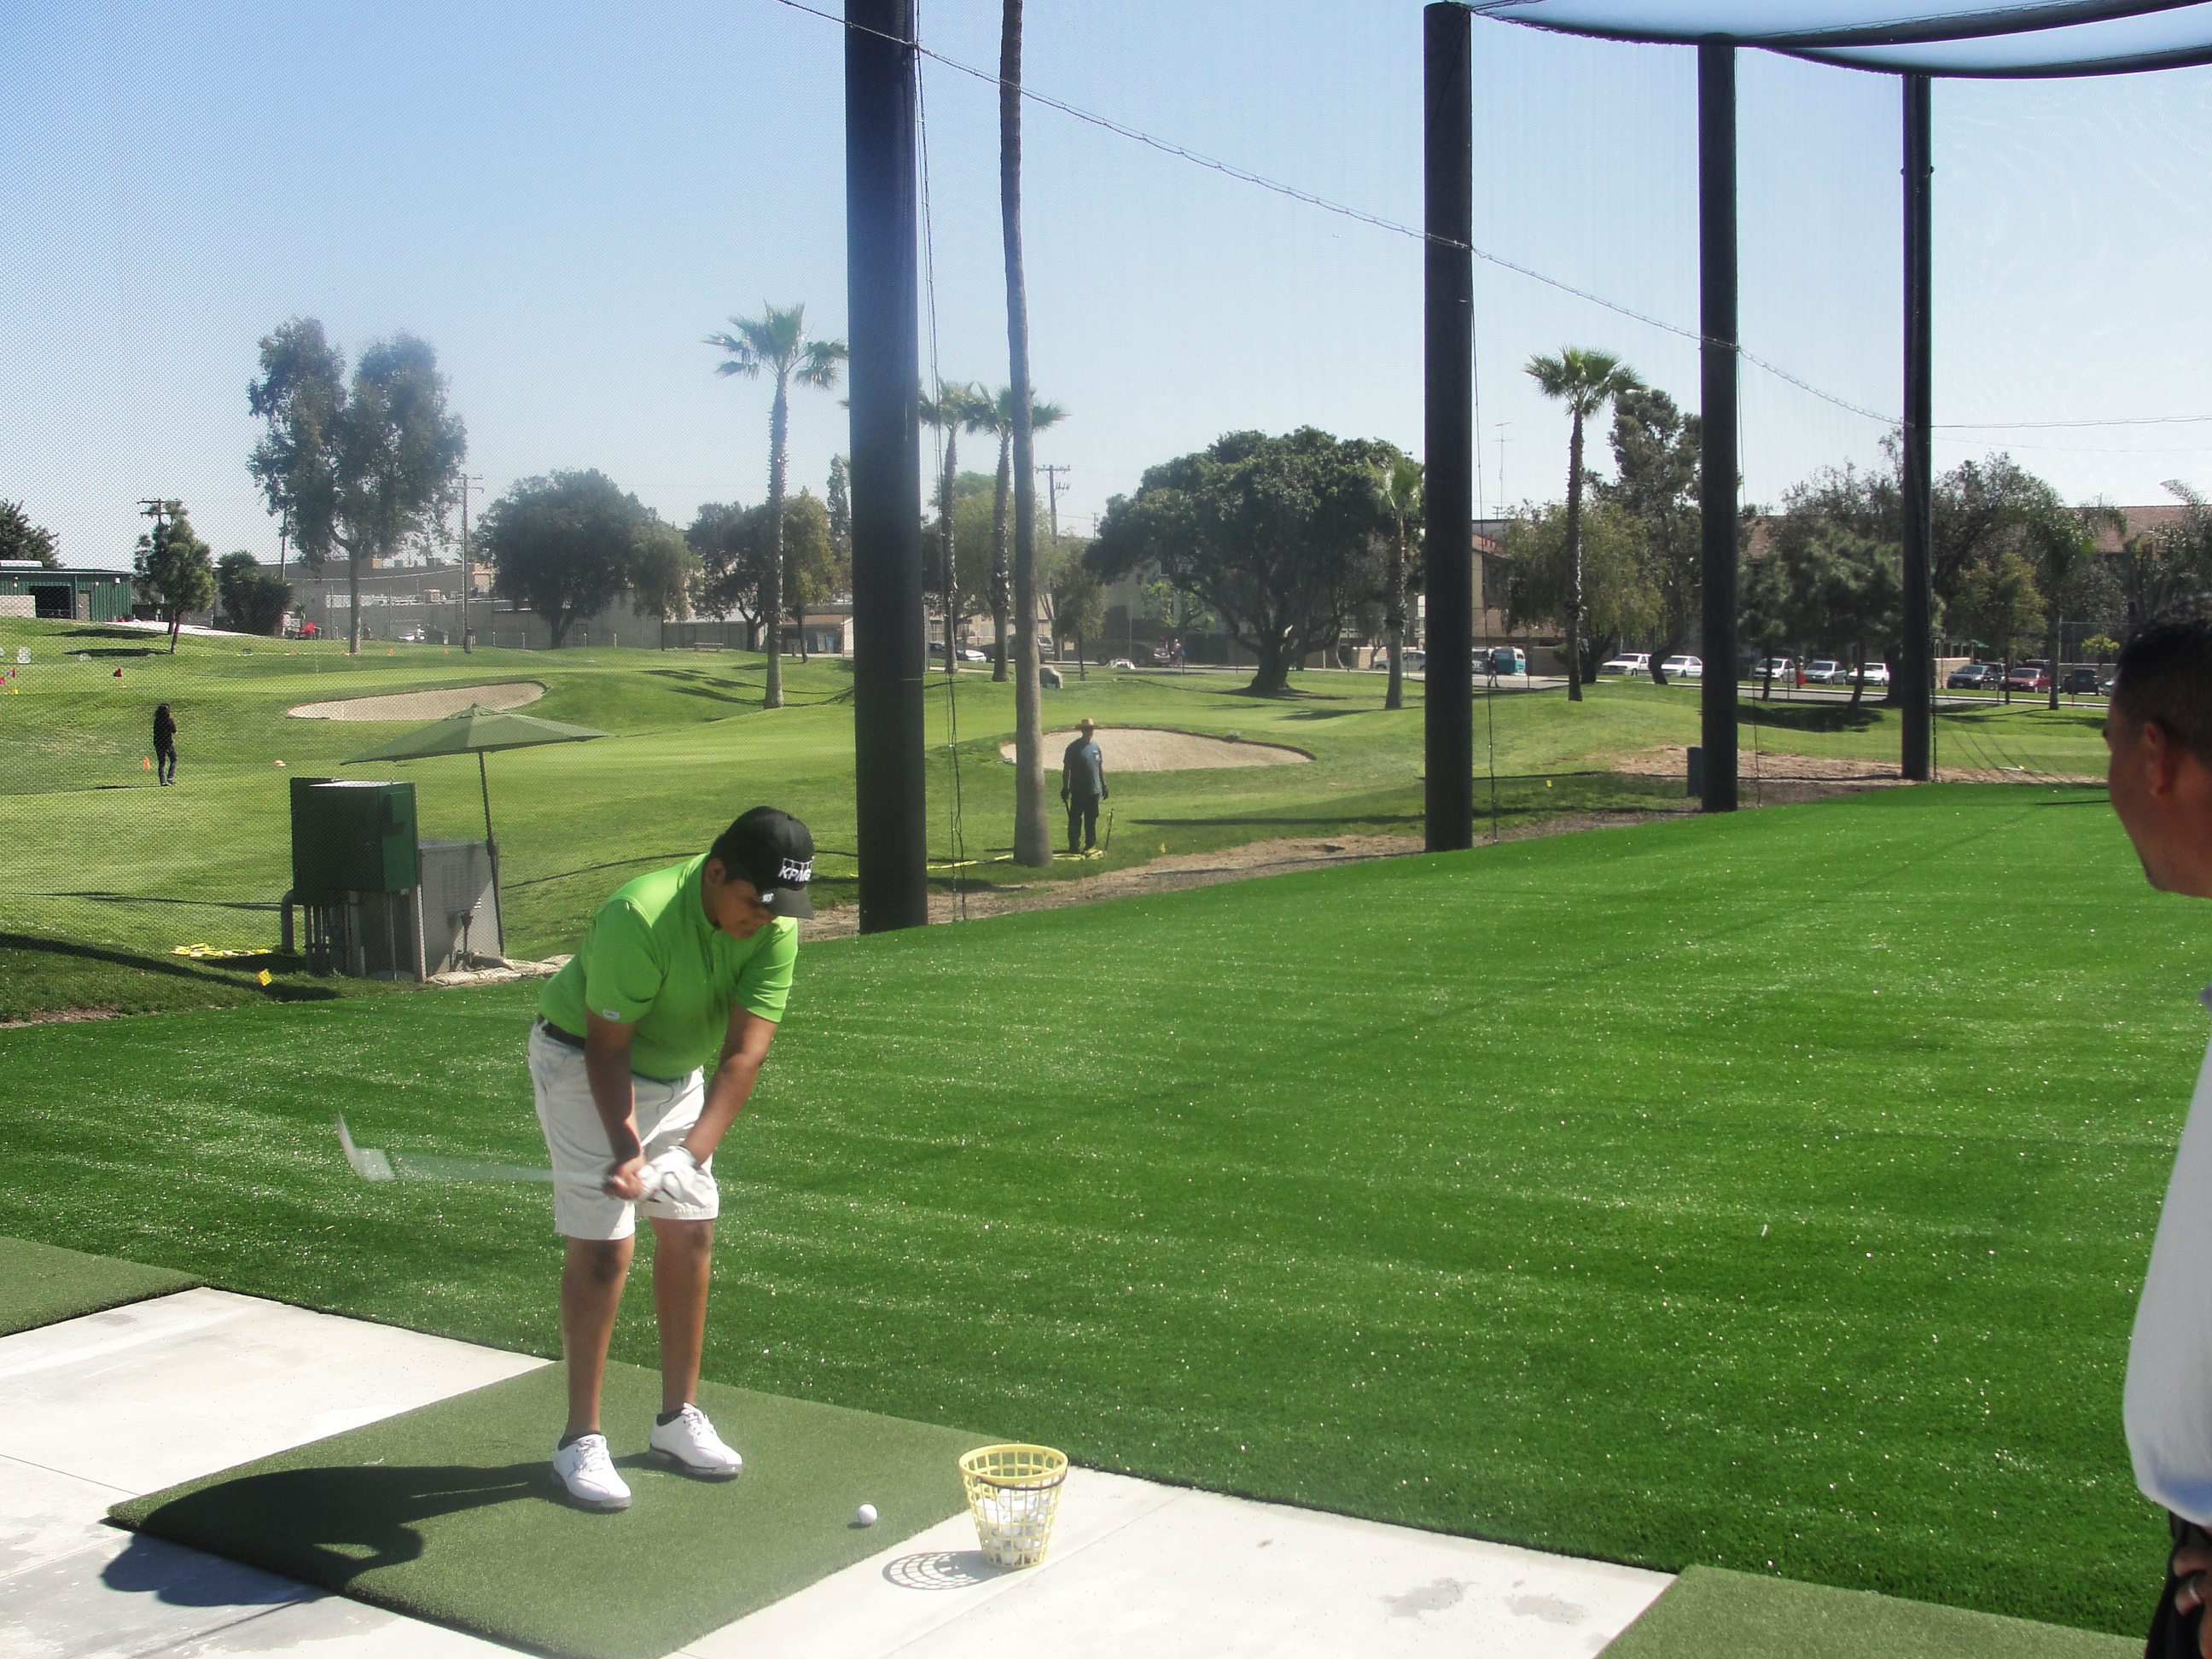 New Synthetic Turf Field Creates More Golf Amp Recreation